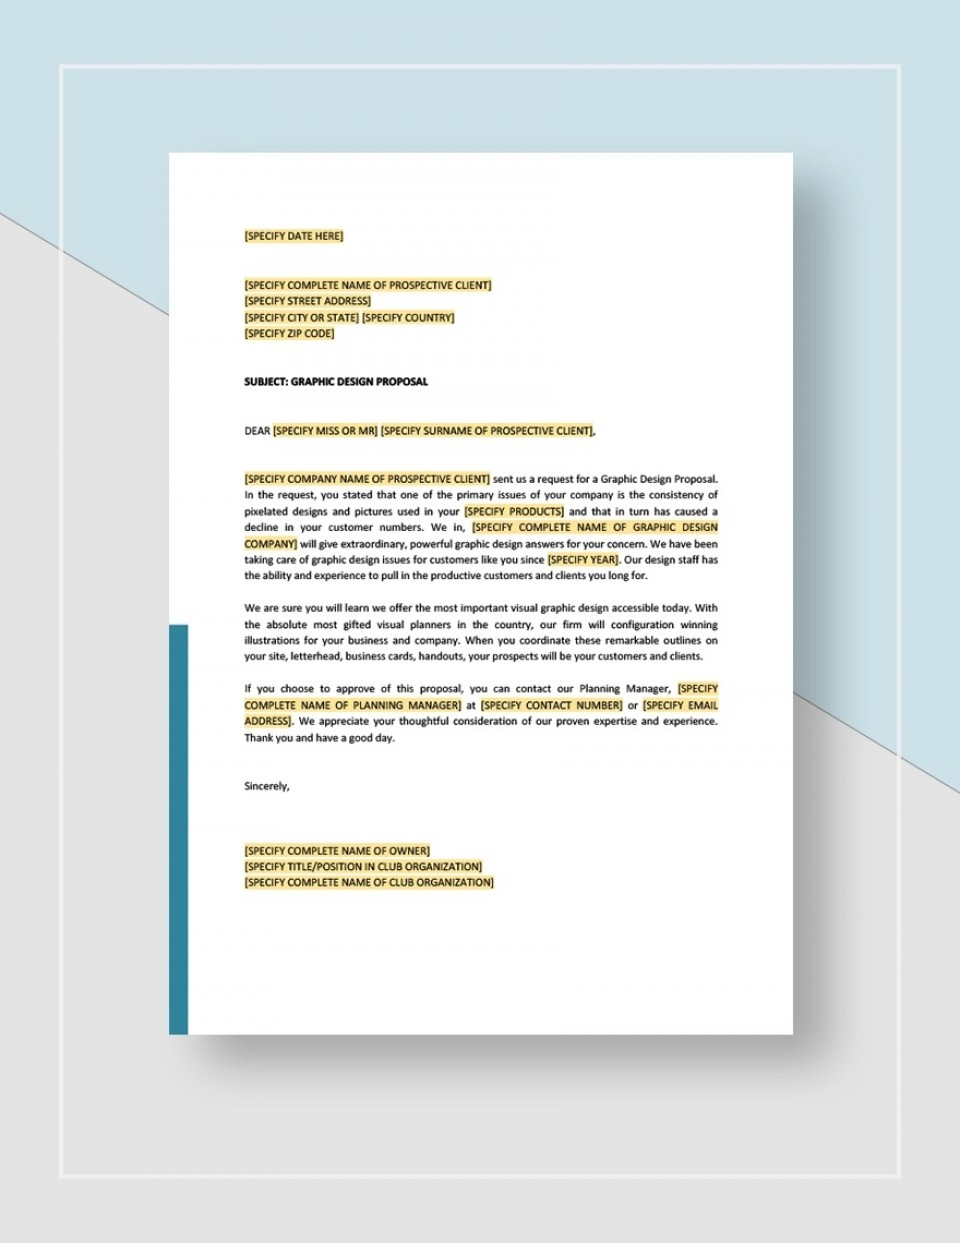 Graphic Design Proposal Template Sample Idea Jpg  Free Freelance960